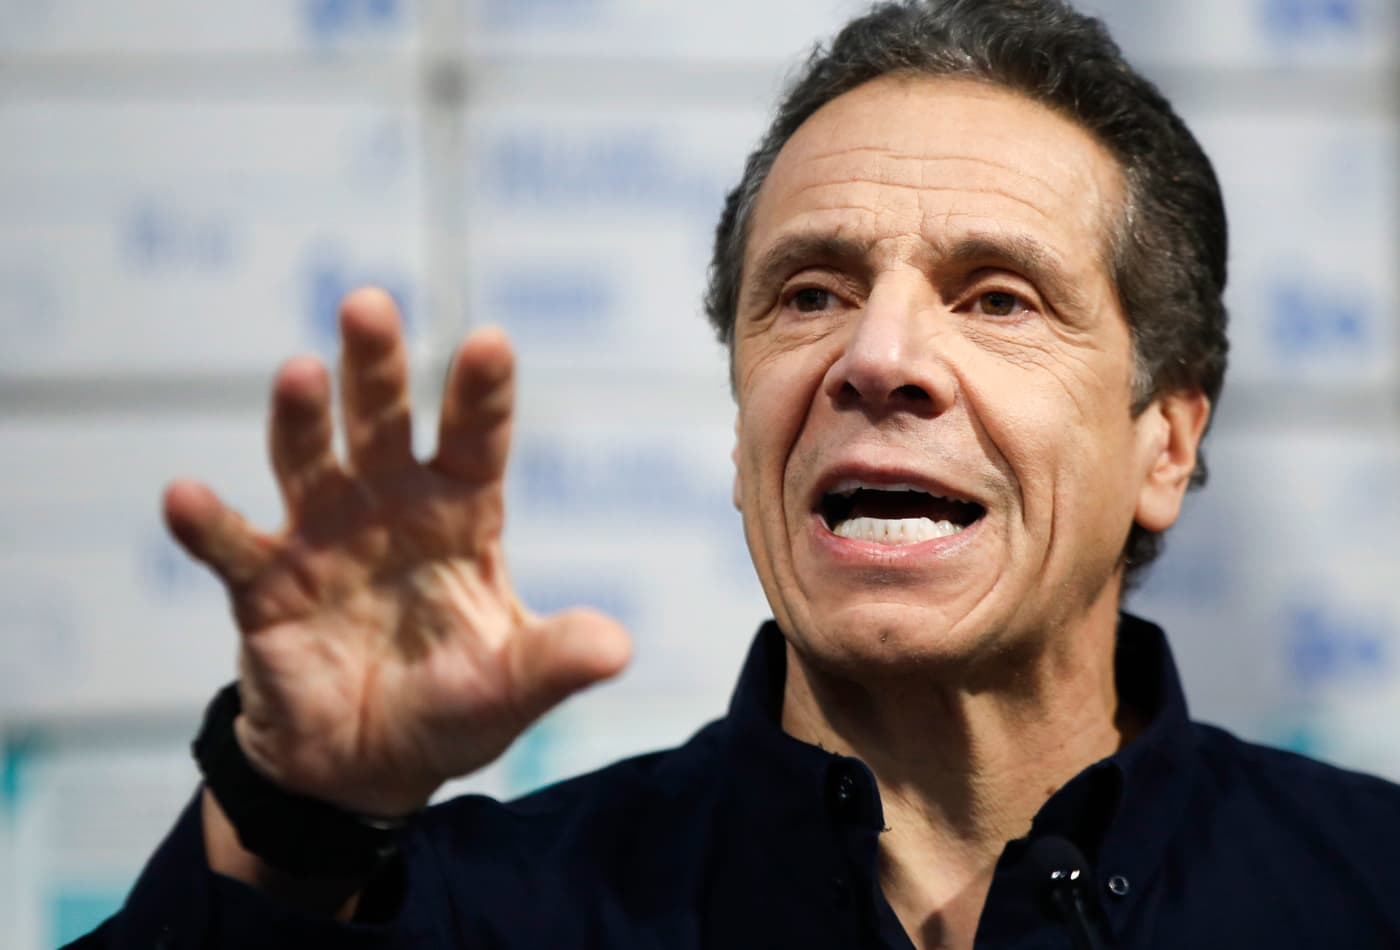 Cuomo says Senate's $2 trillion coronavirus bill would be 'terrible' for New York